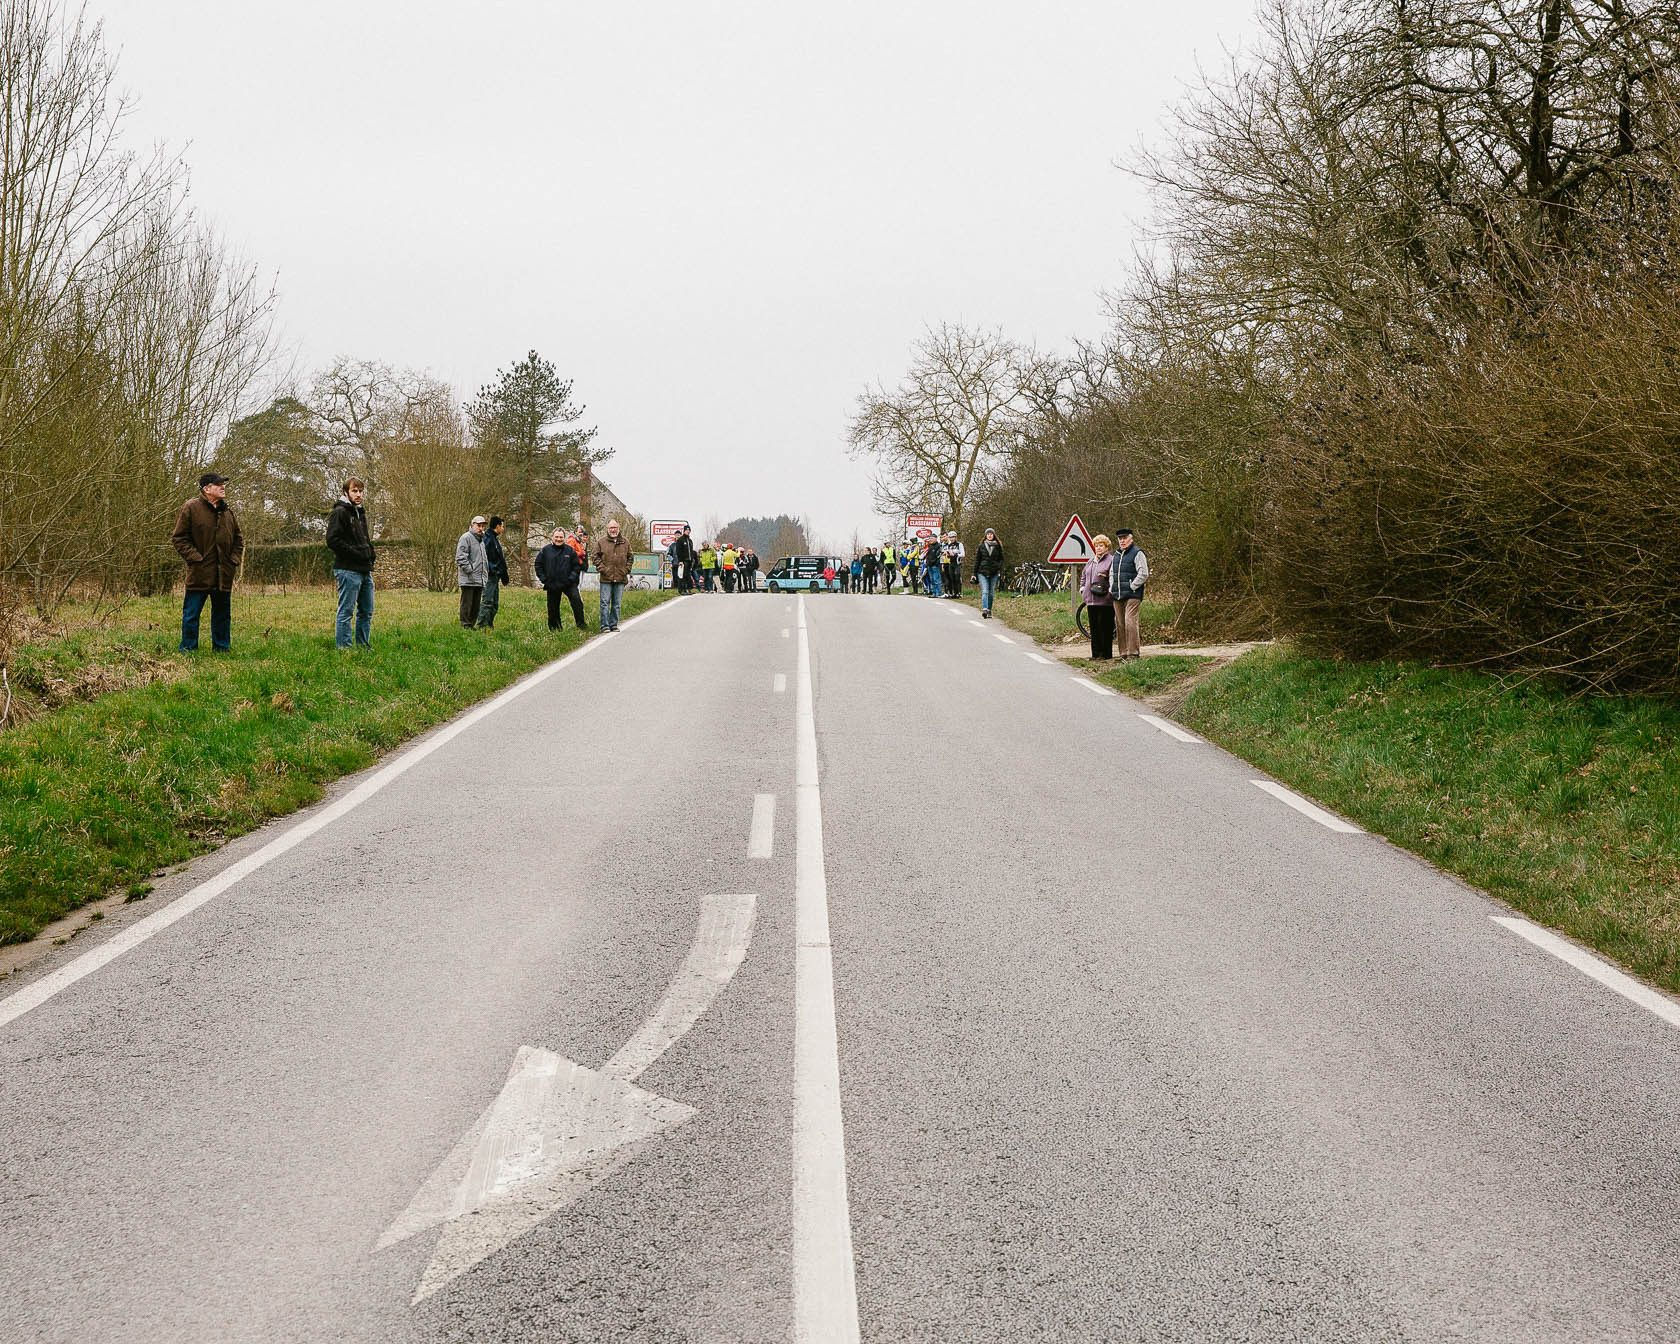 manualforspeed_parisnice14_stageone-74-1680x1344